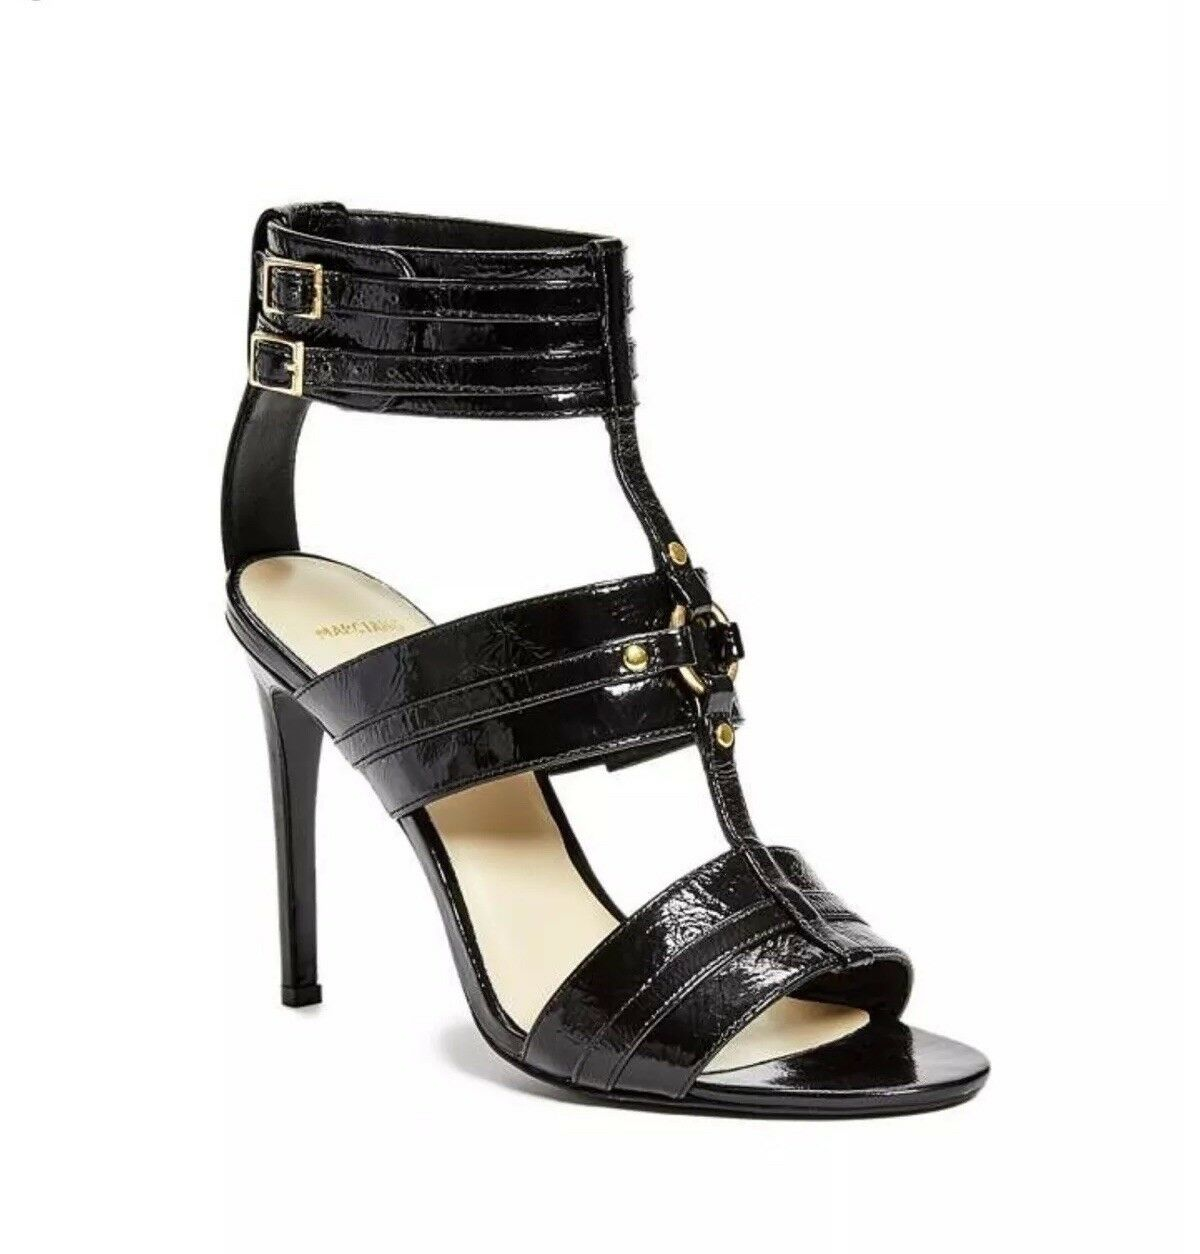 Guess By Marciano Women's Lexa Heels Black Leather Size 9